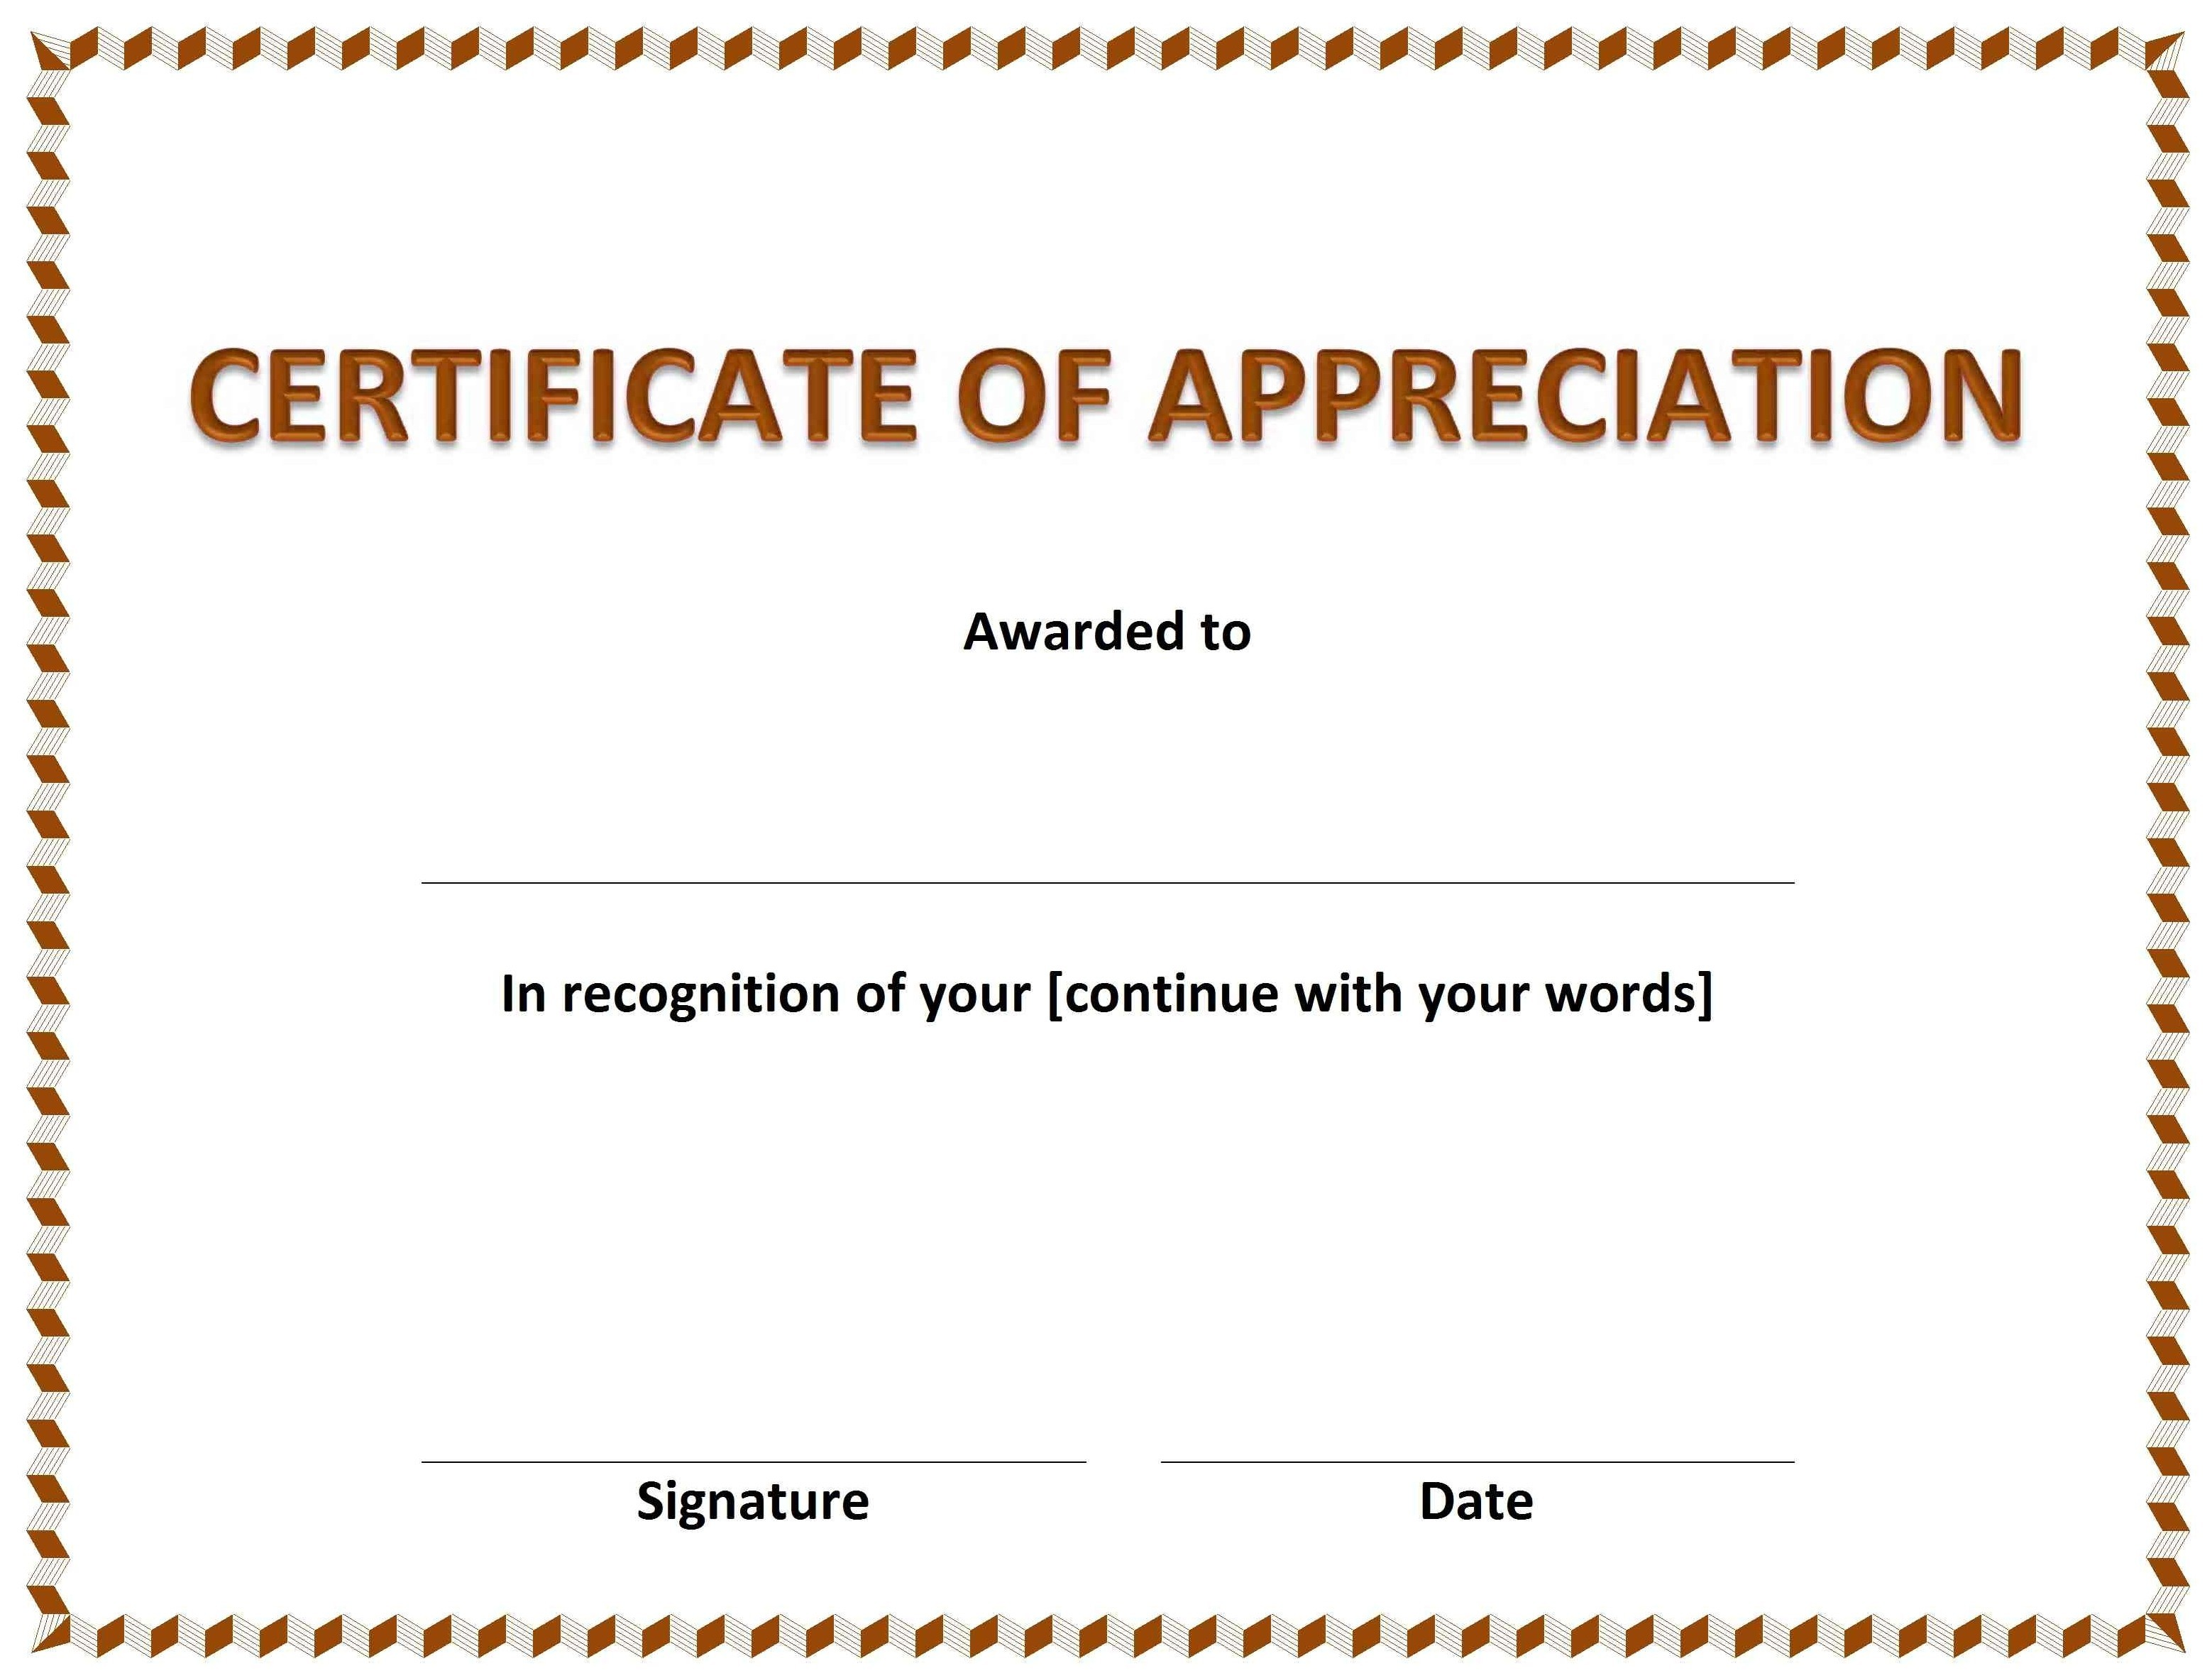 Certificate clipart certificate appreciation. Inspiration best border free